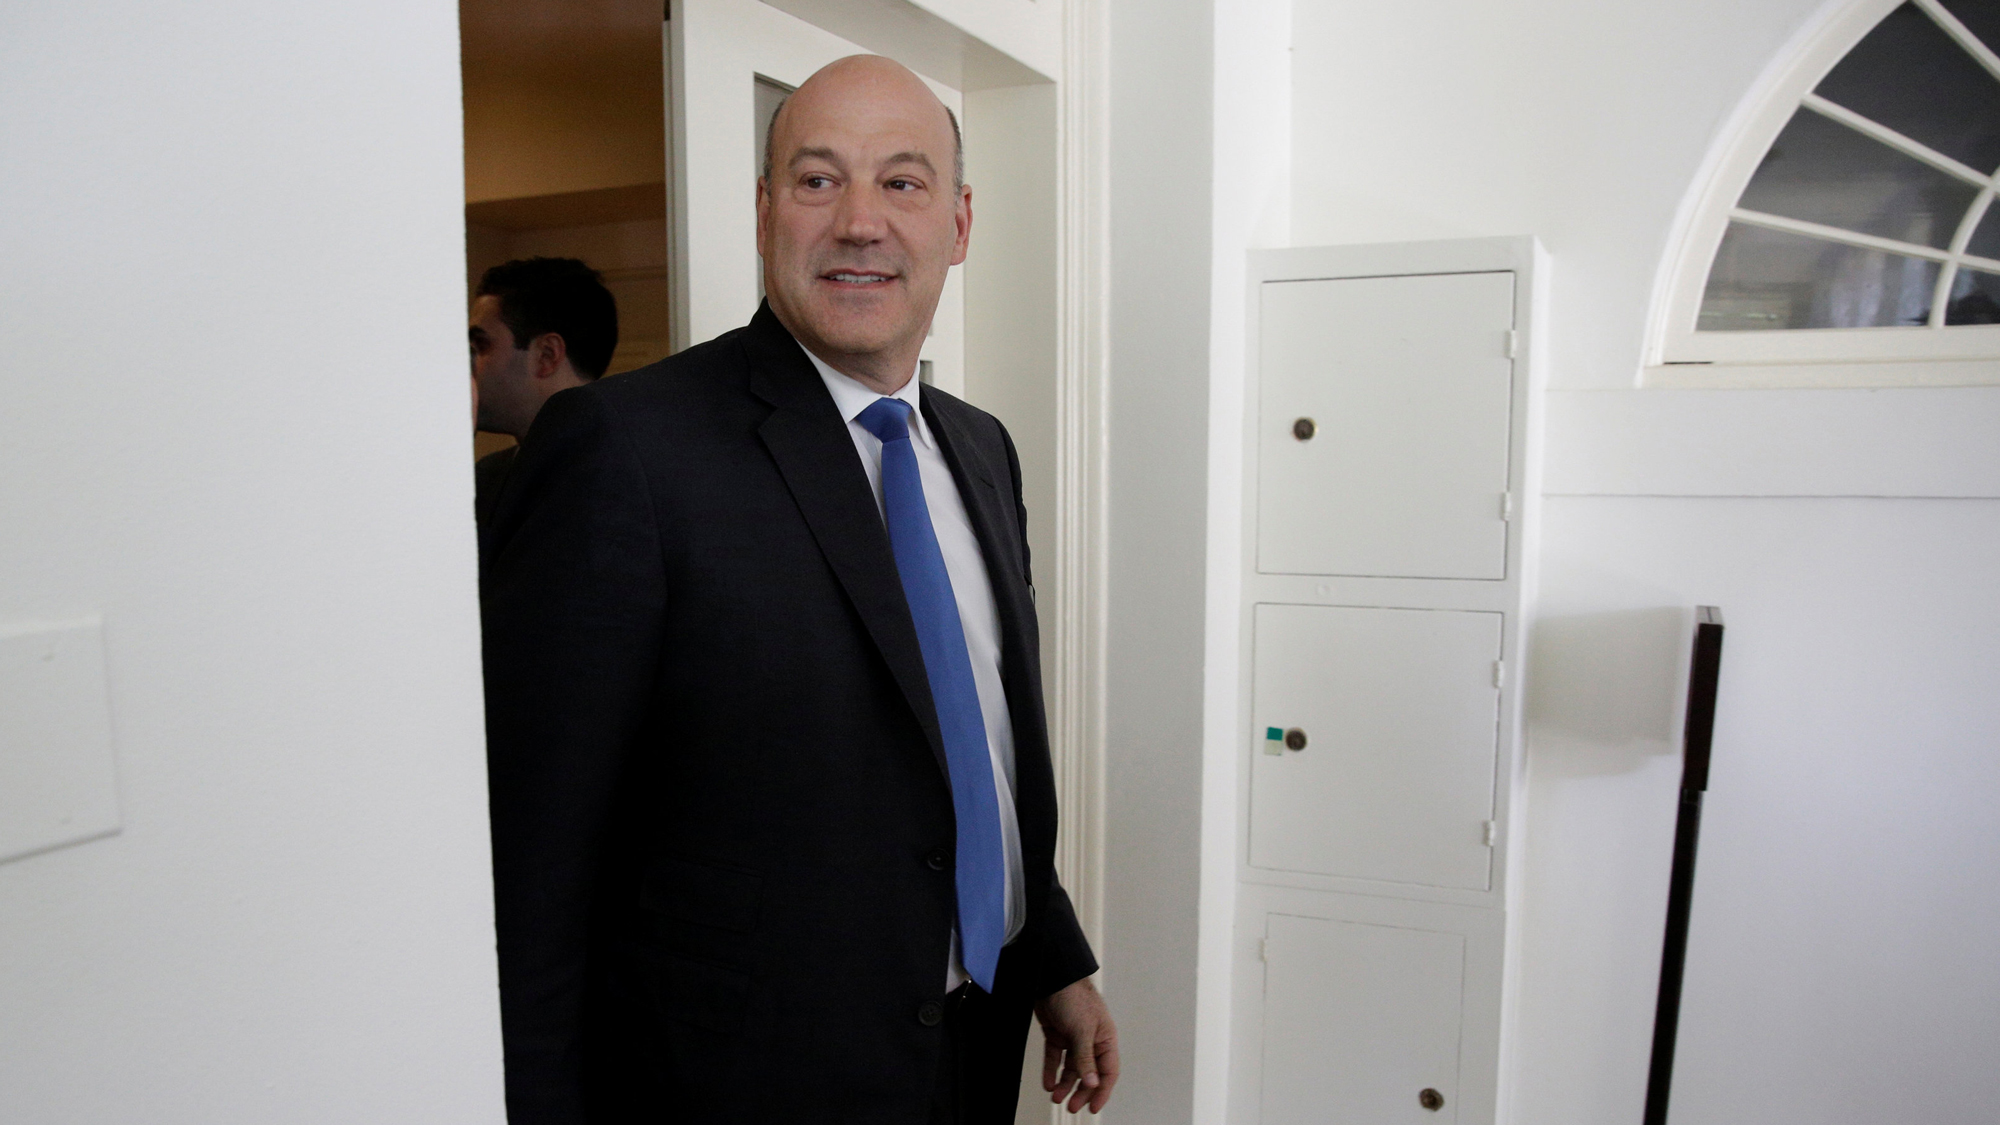 Gary Cohn is seen walking through a doorway at the White House in Washington DC.